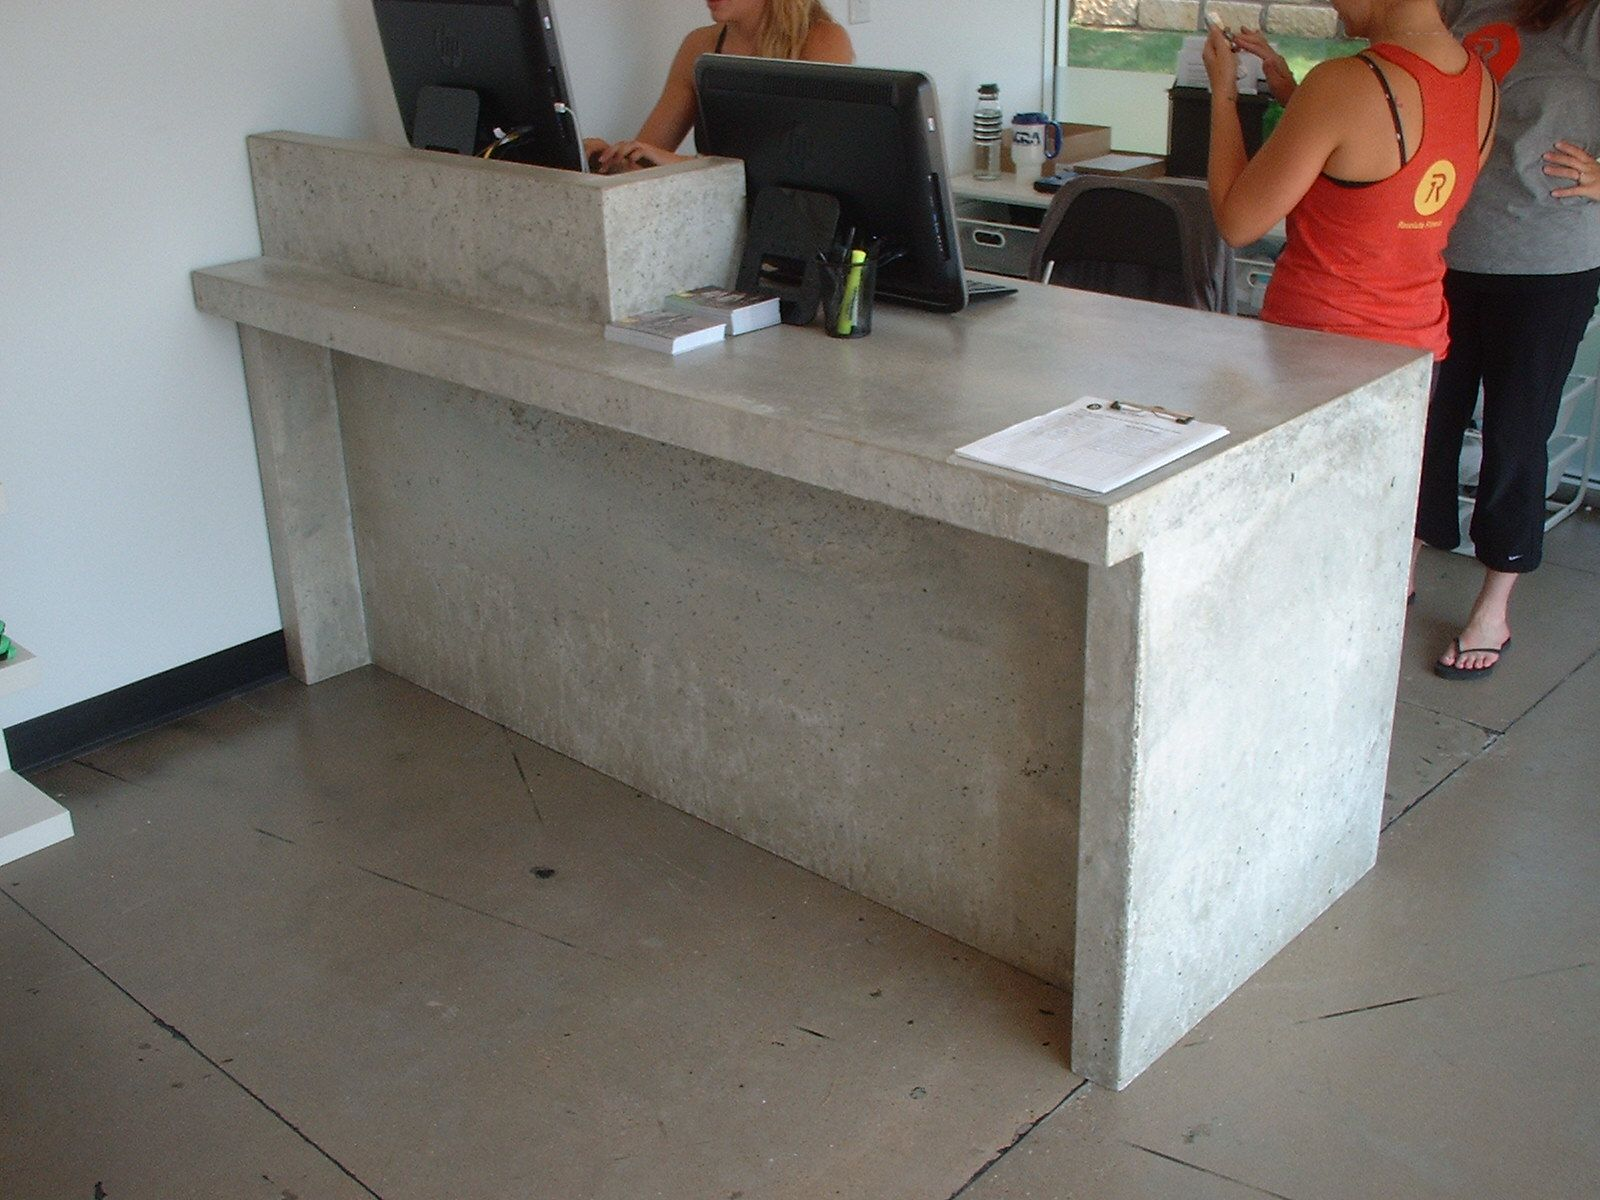 Reception Desks Desk Ideas Salon Receptions Concrete Cement Himalayan Cat Wedding